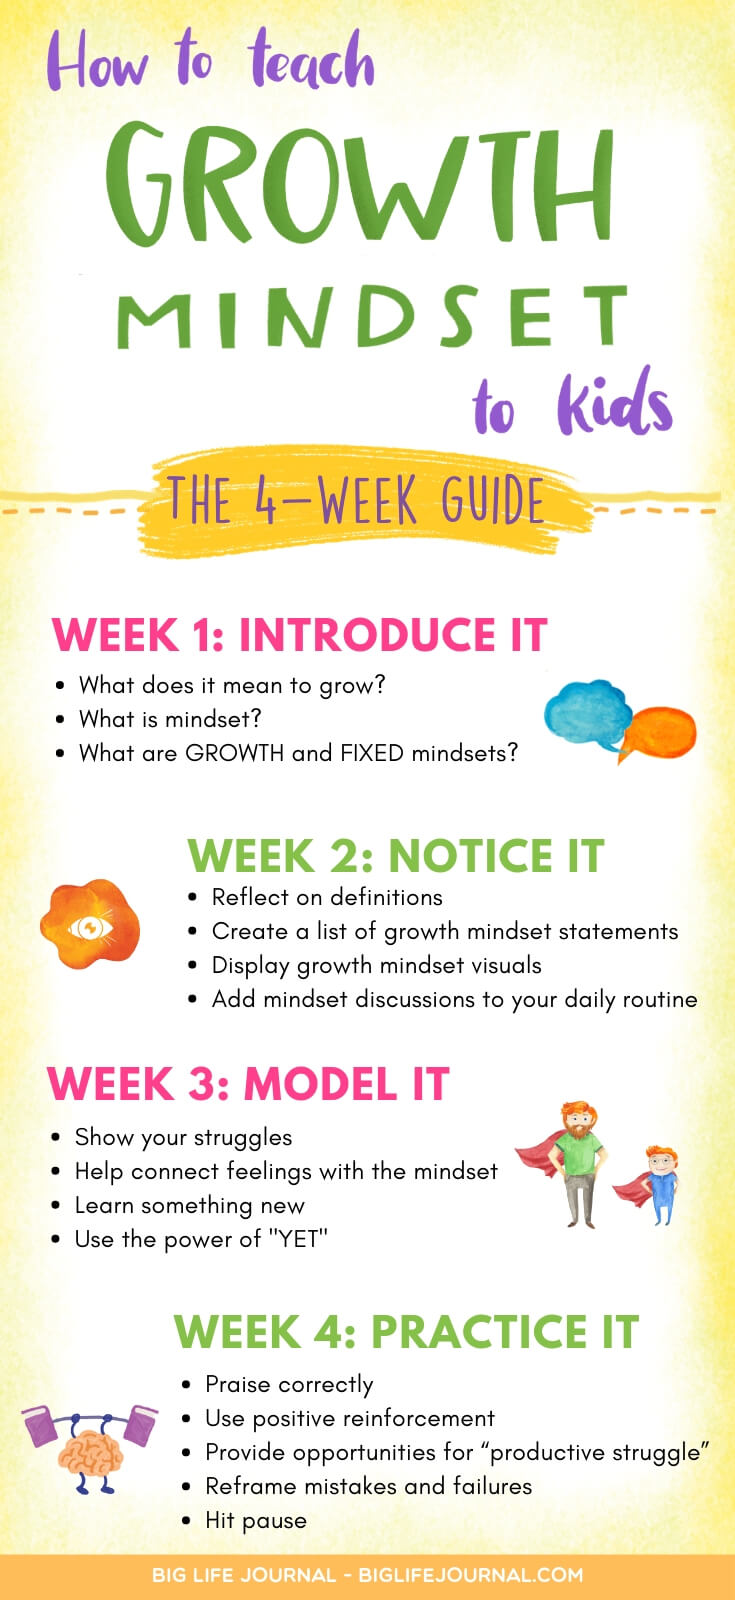 How to Teach Growth Mindset to Kids - The 4 - Week Guide